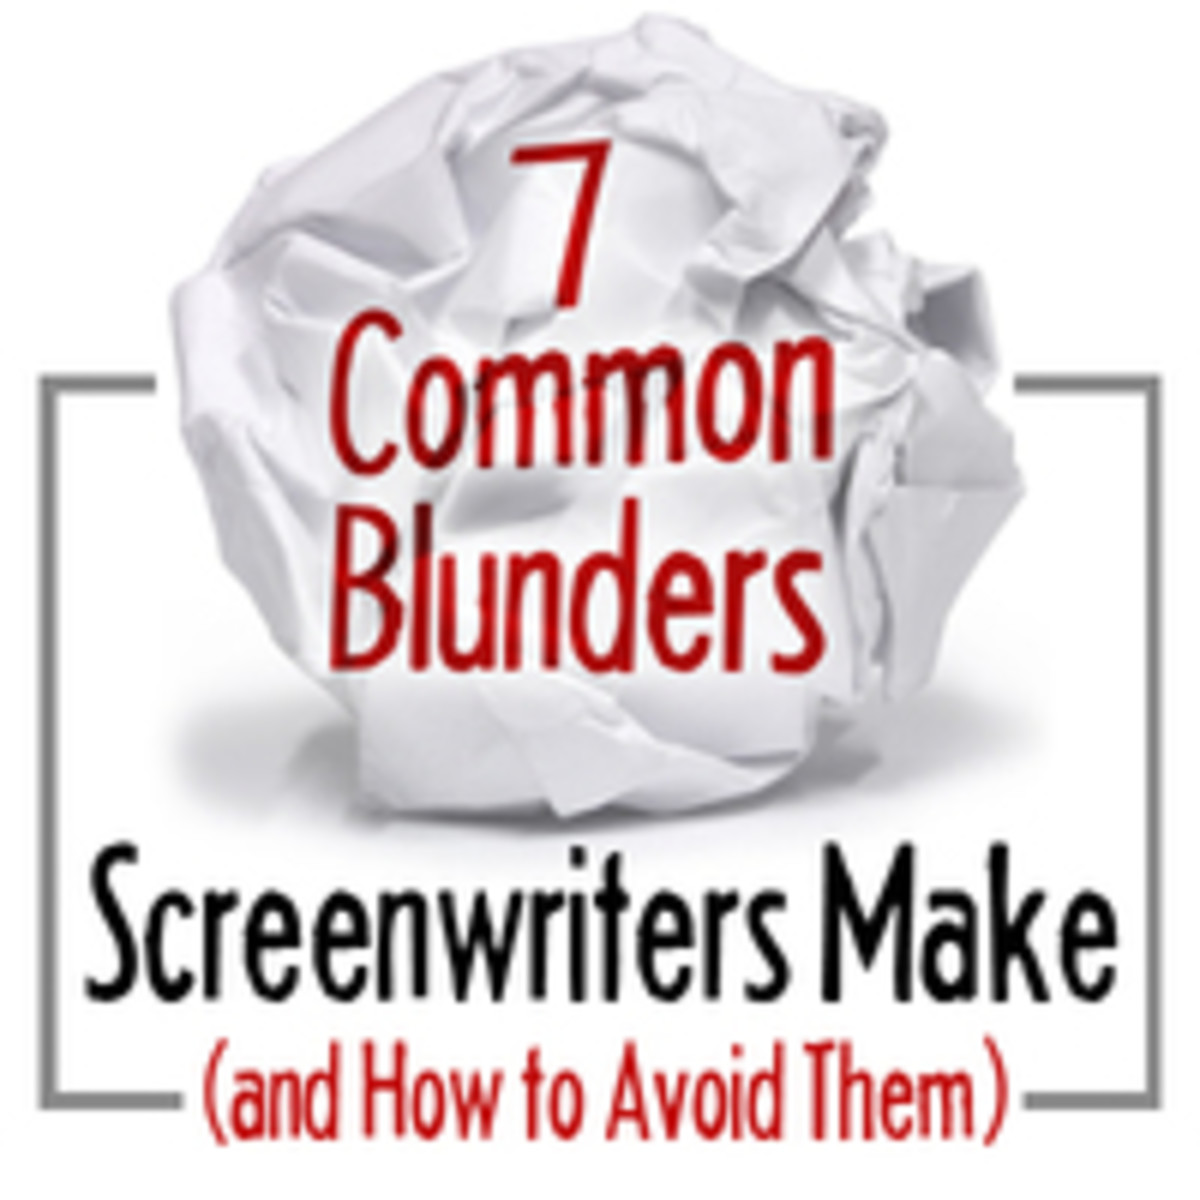 7 Common blunders screenwriters make and how to avoid them